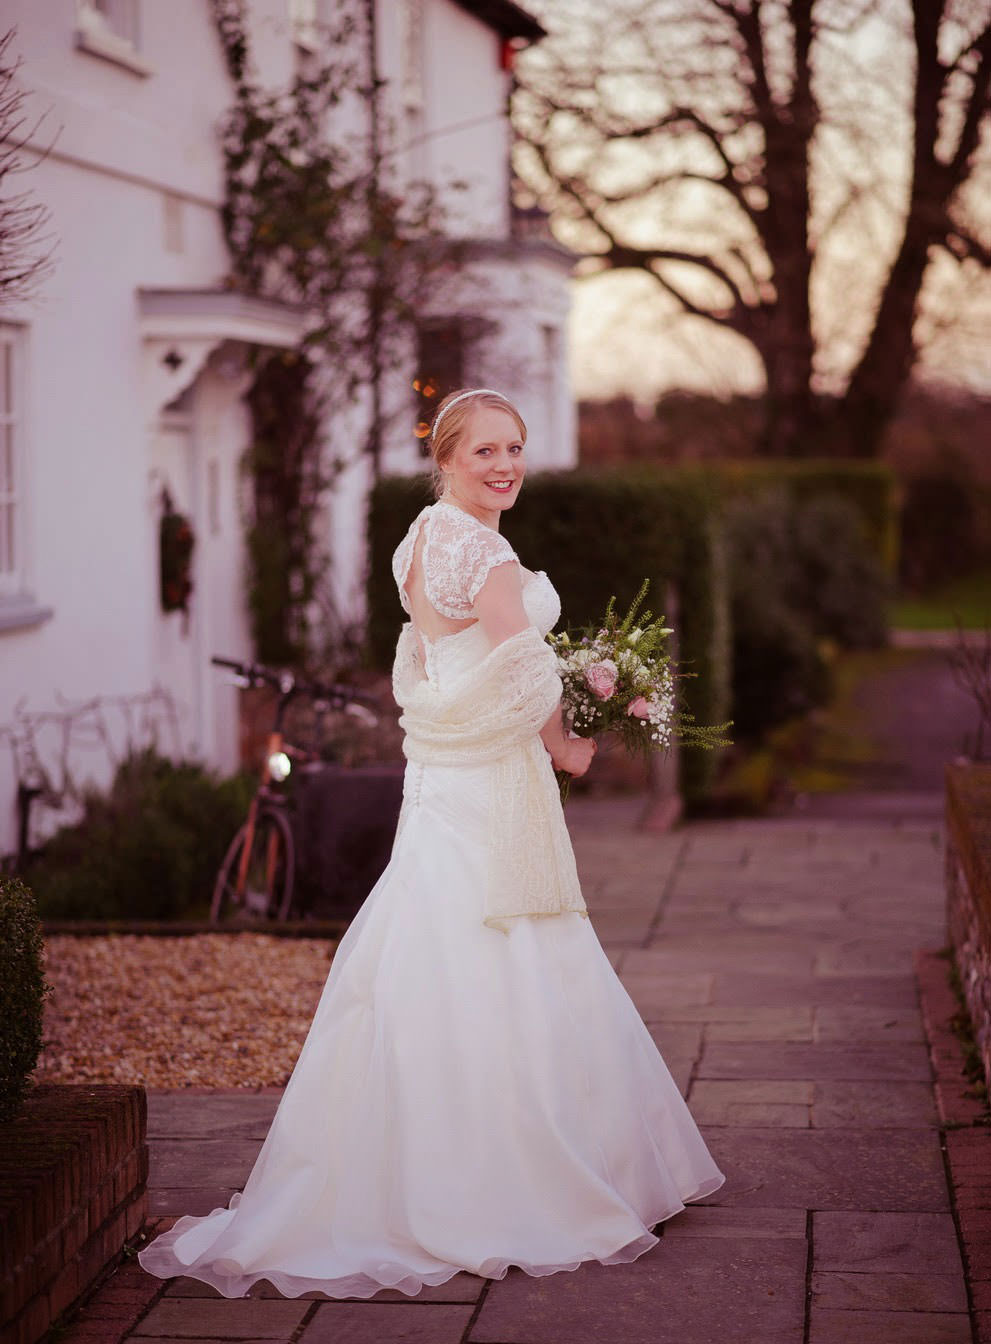 ali-gaudion-chichester-wedding-photographer-southend-barns-winter-wedding-019